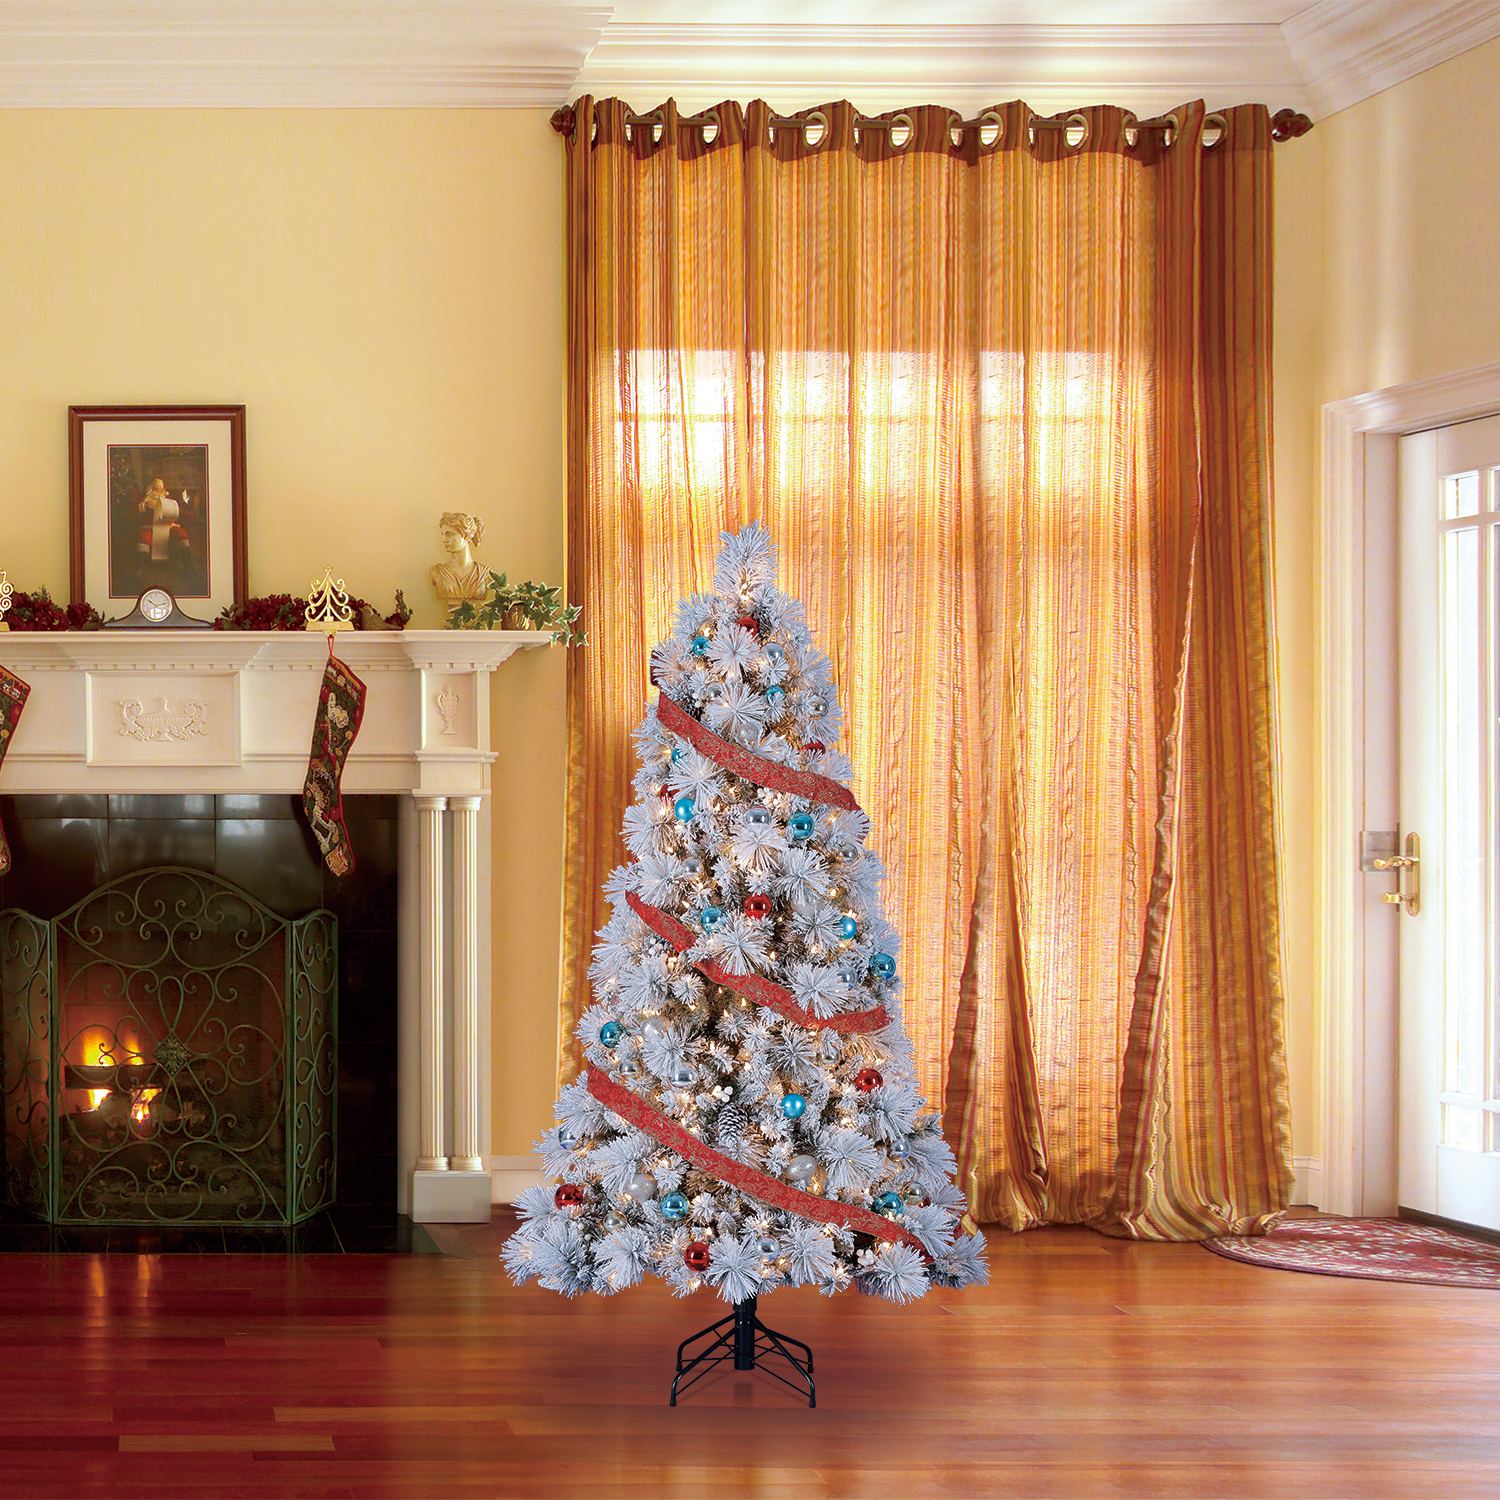 Home Heritage Snowdrift Spruce 6.5 Foot Flocked Christmas ...